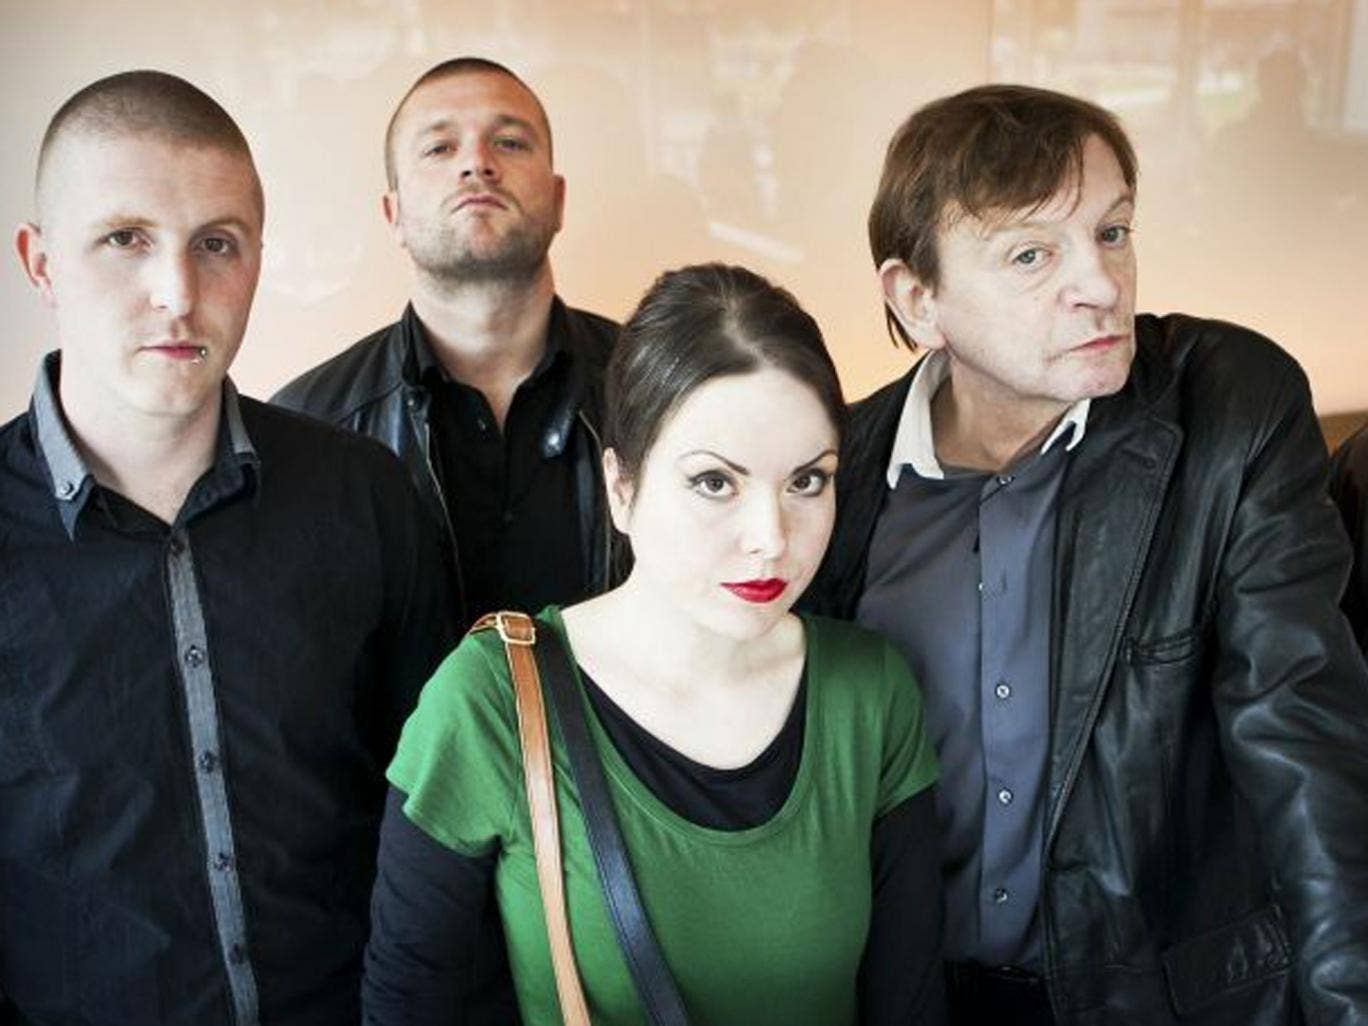 Anti-hero: Mark E Smith (right), his wife, Elena Poulou, and the rest of The Fall